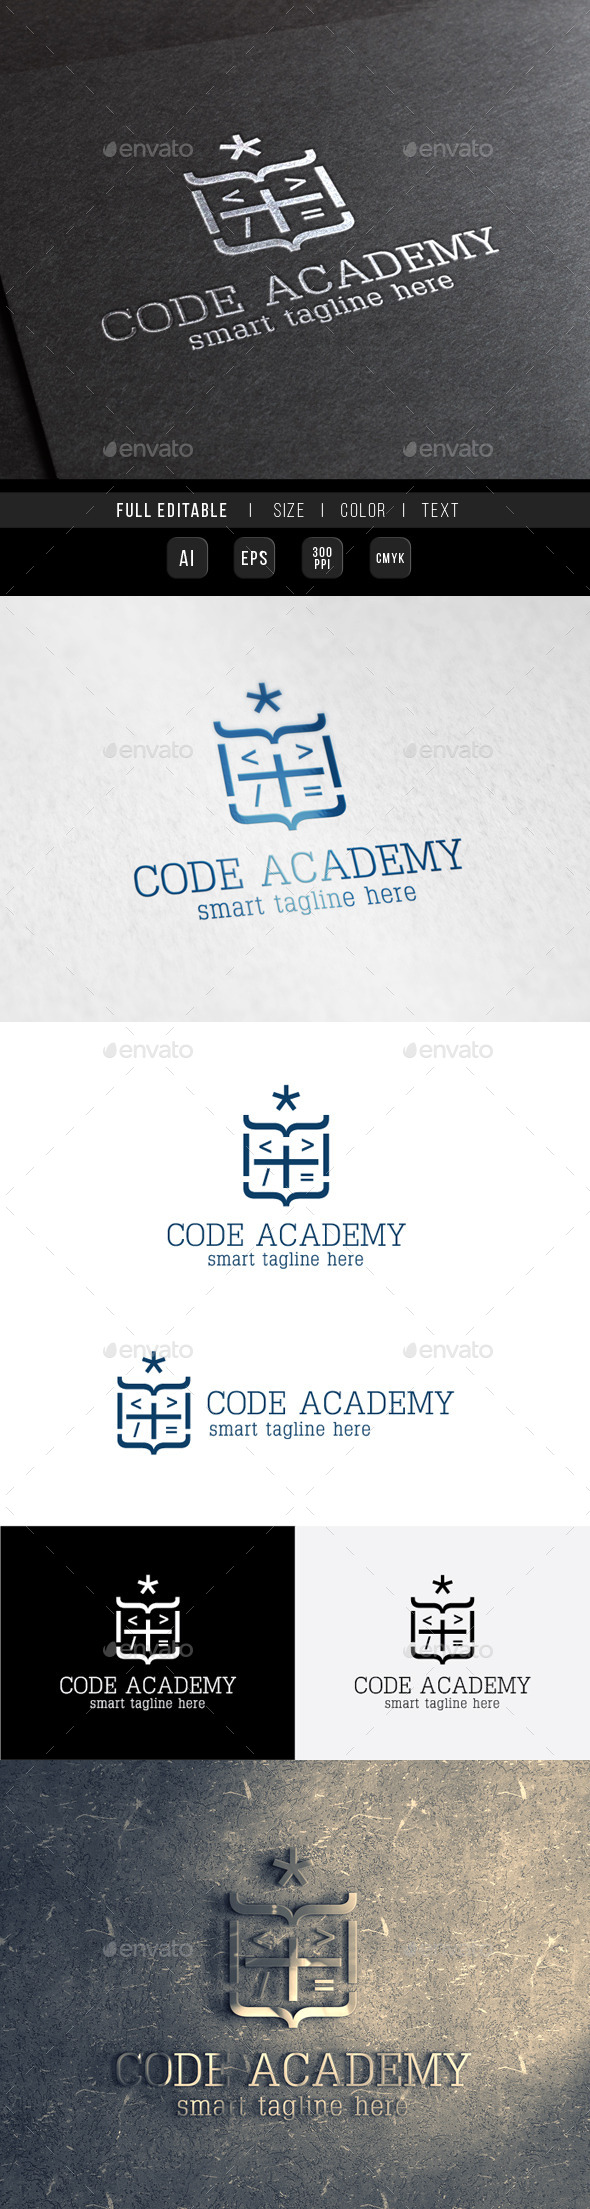 Royal King Code Academy